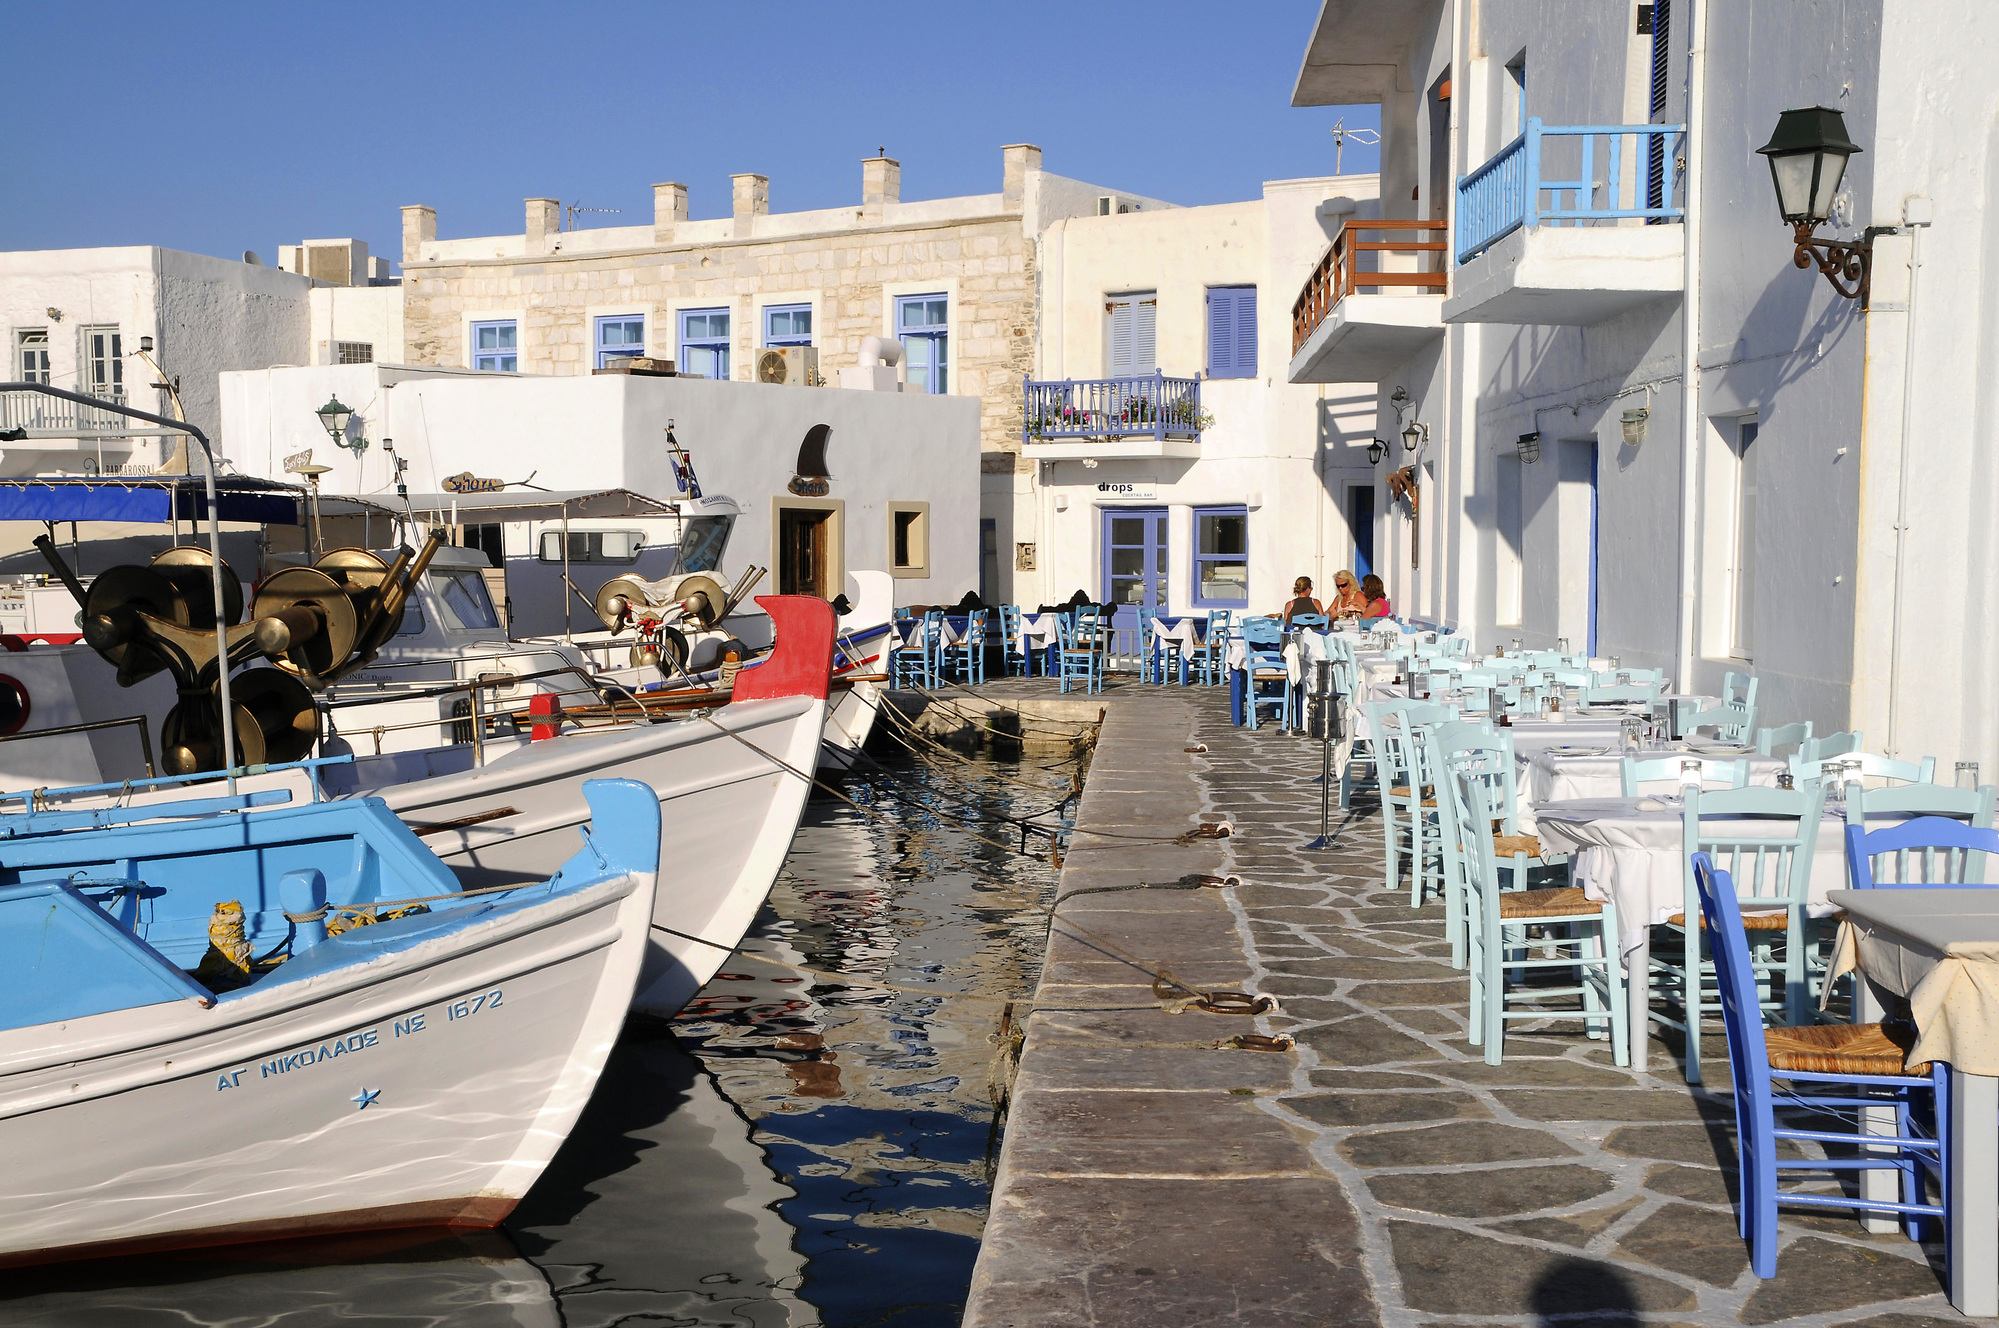 Naoussa harbour, filled with little cafés and outdoor seating.